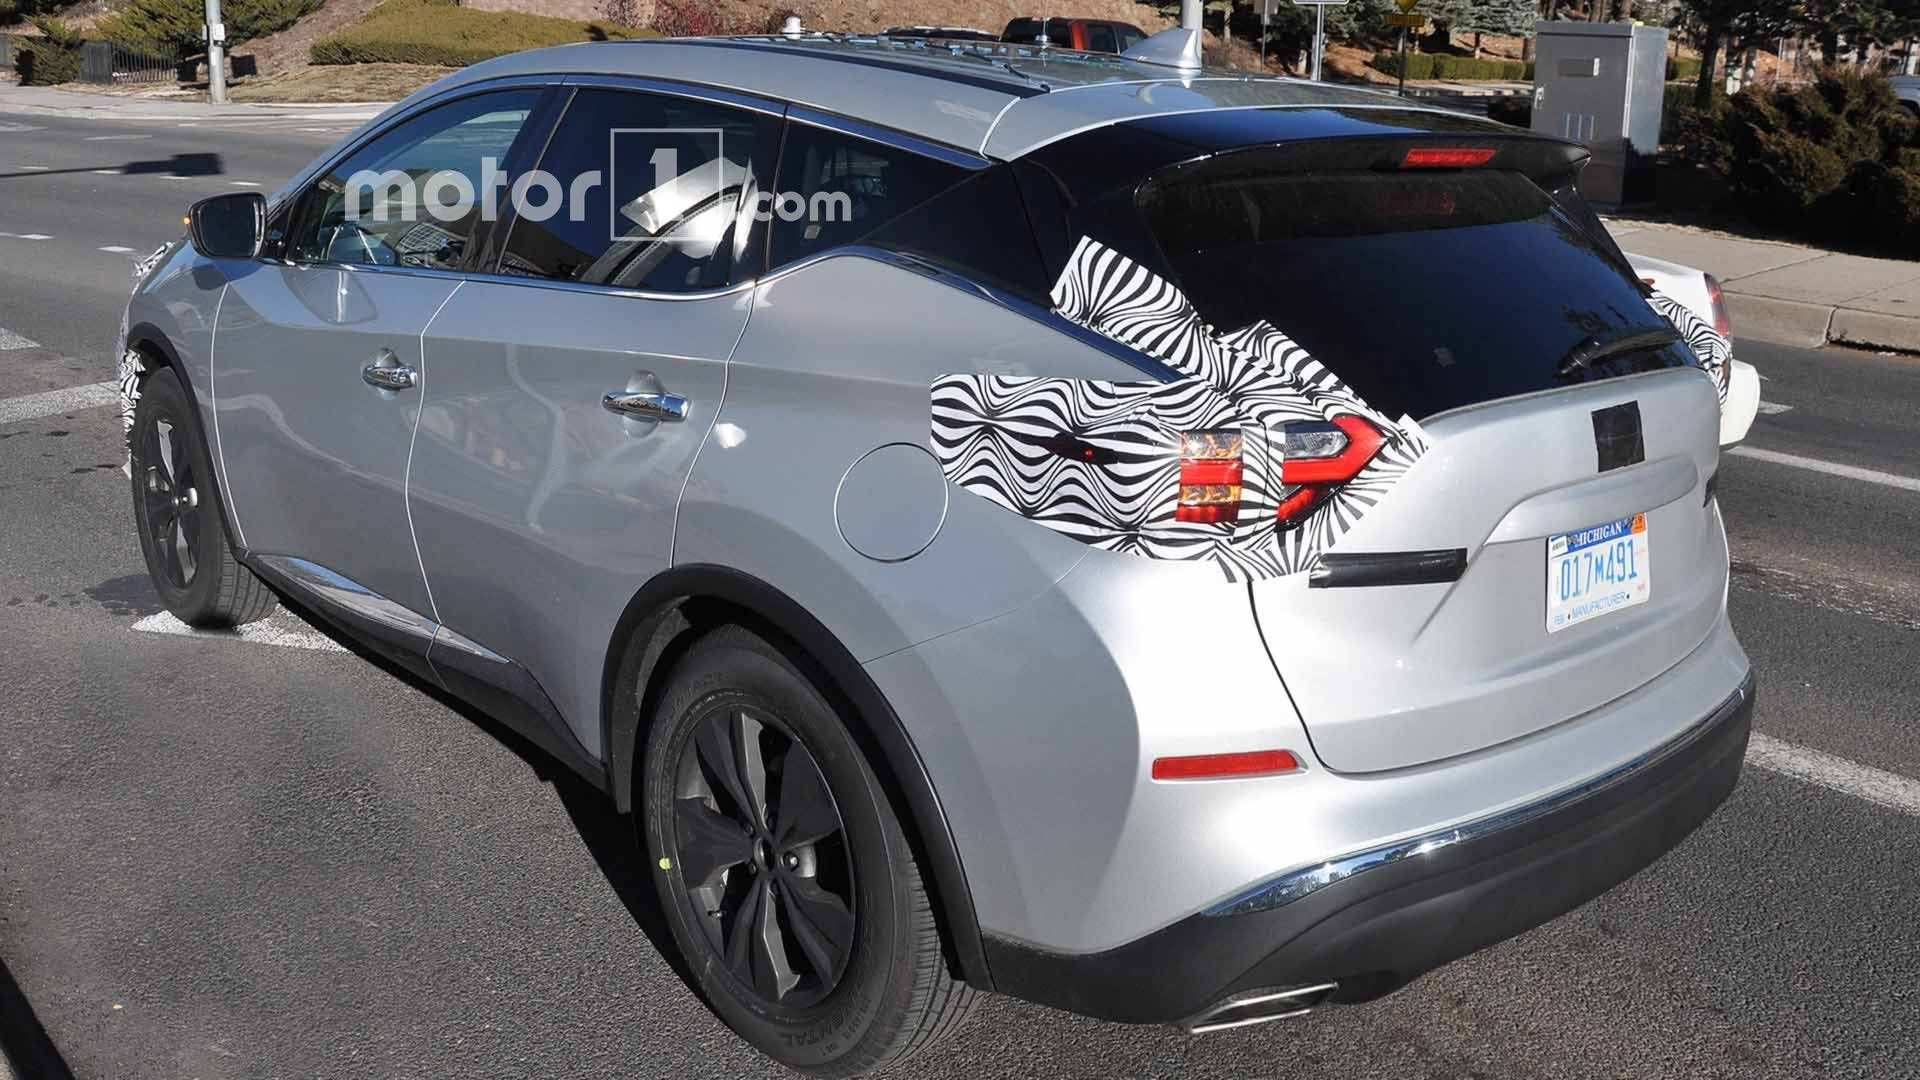 34 New 2020 Nissan Murano Specs and Review with 2020 Nissan Murano